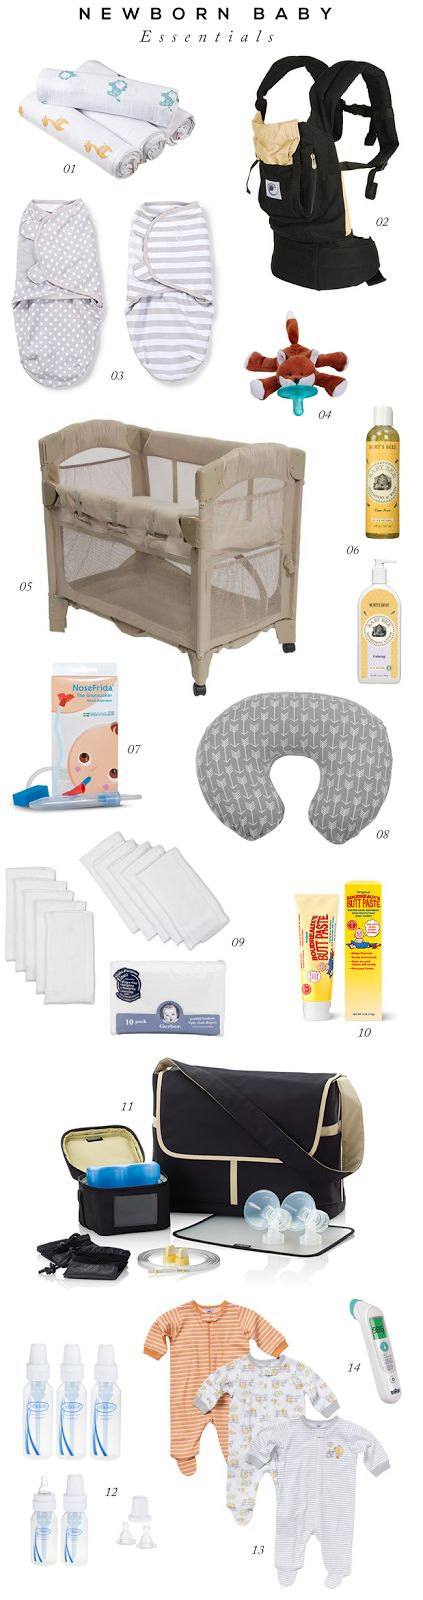 Newborn Baby Essentials List